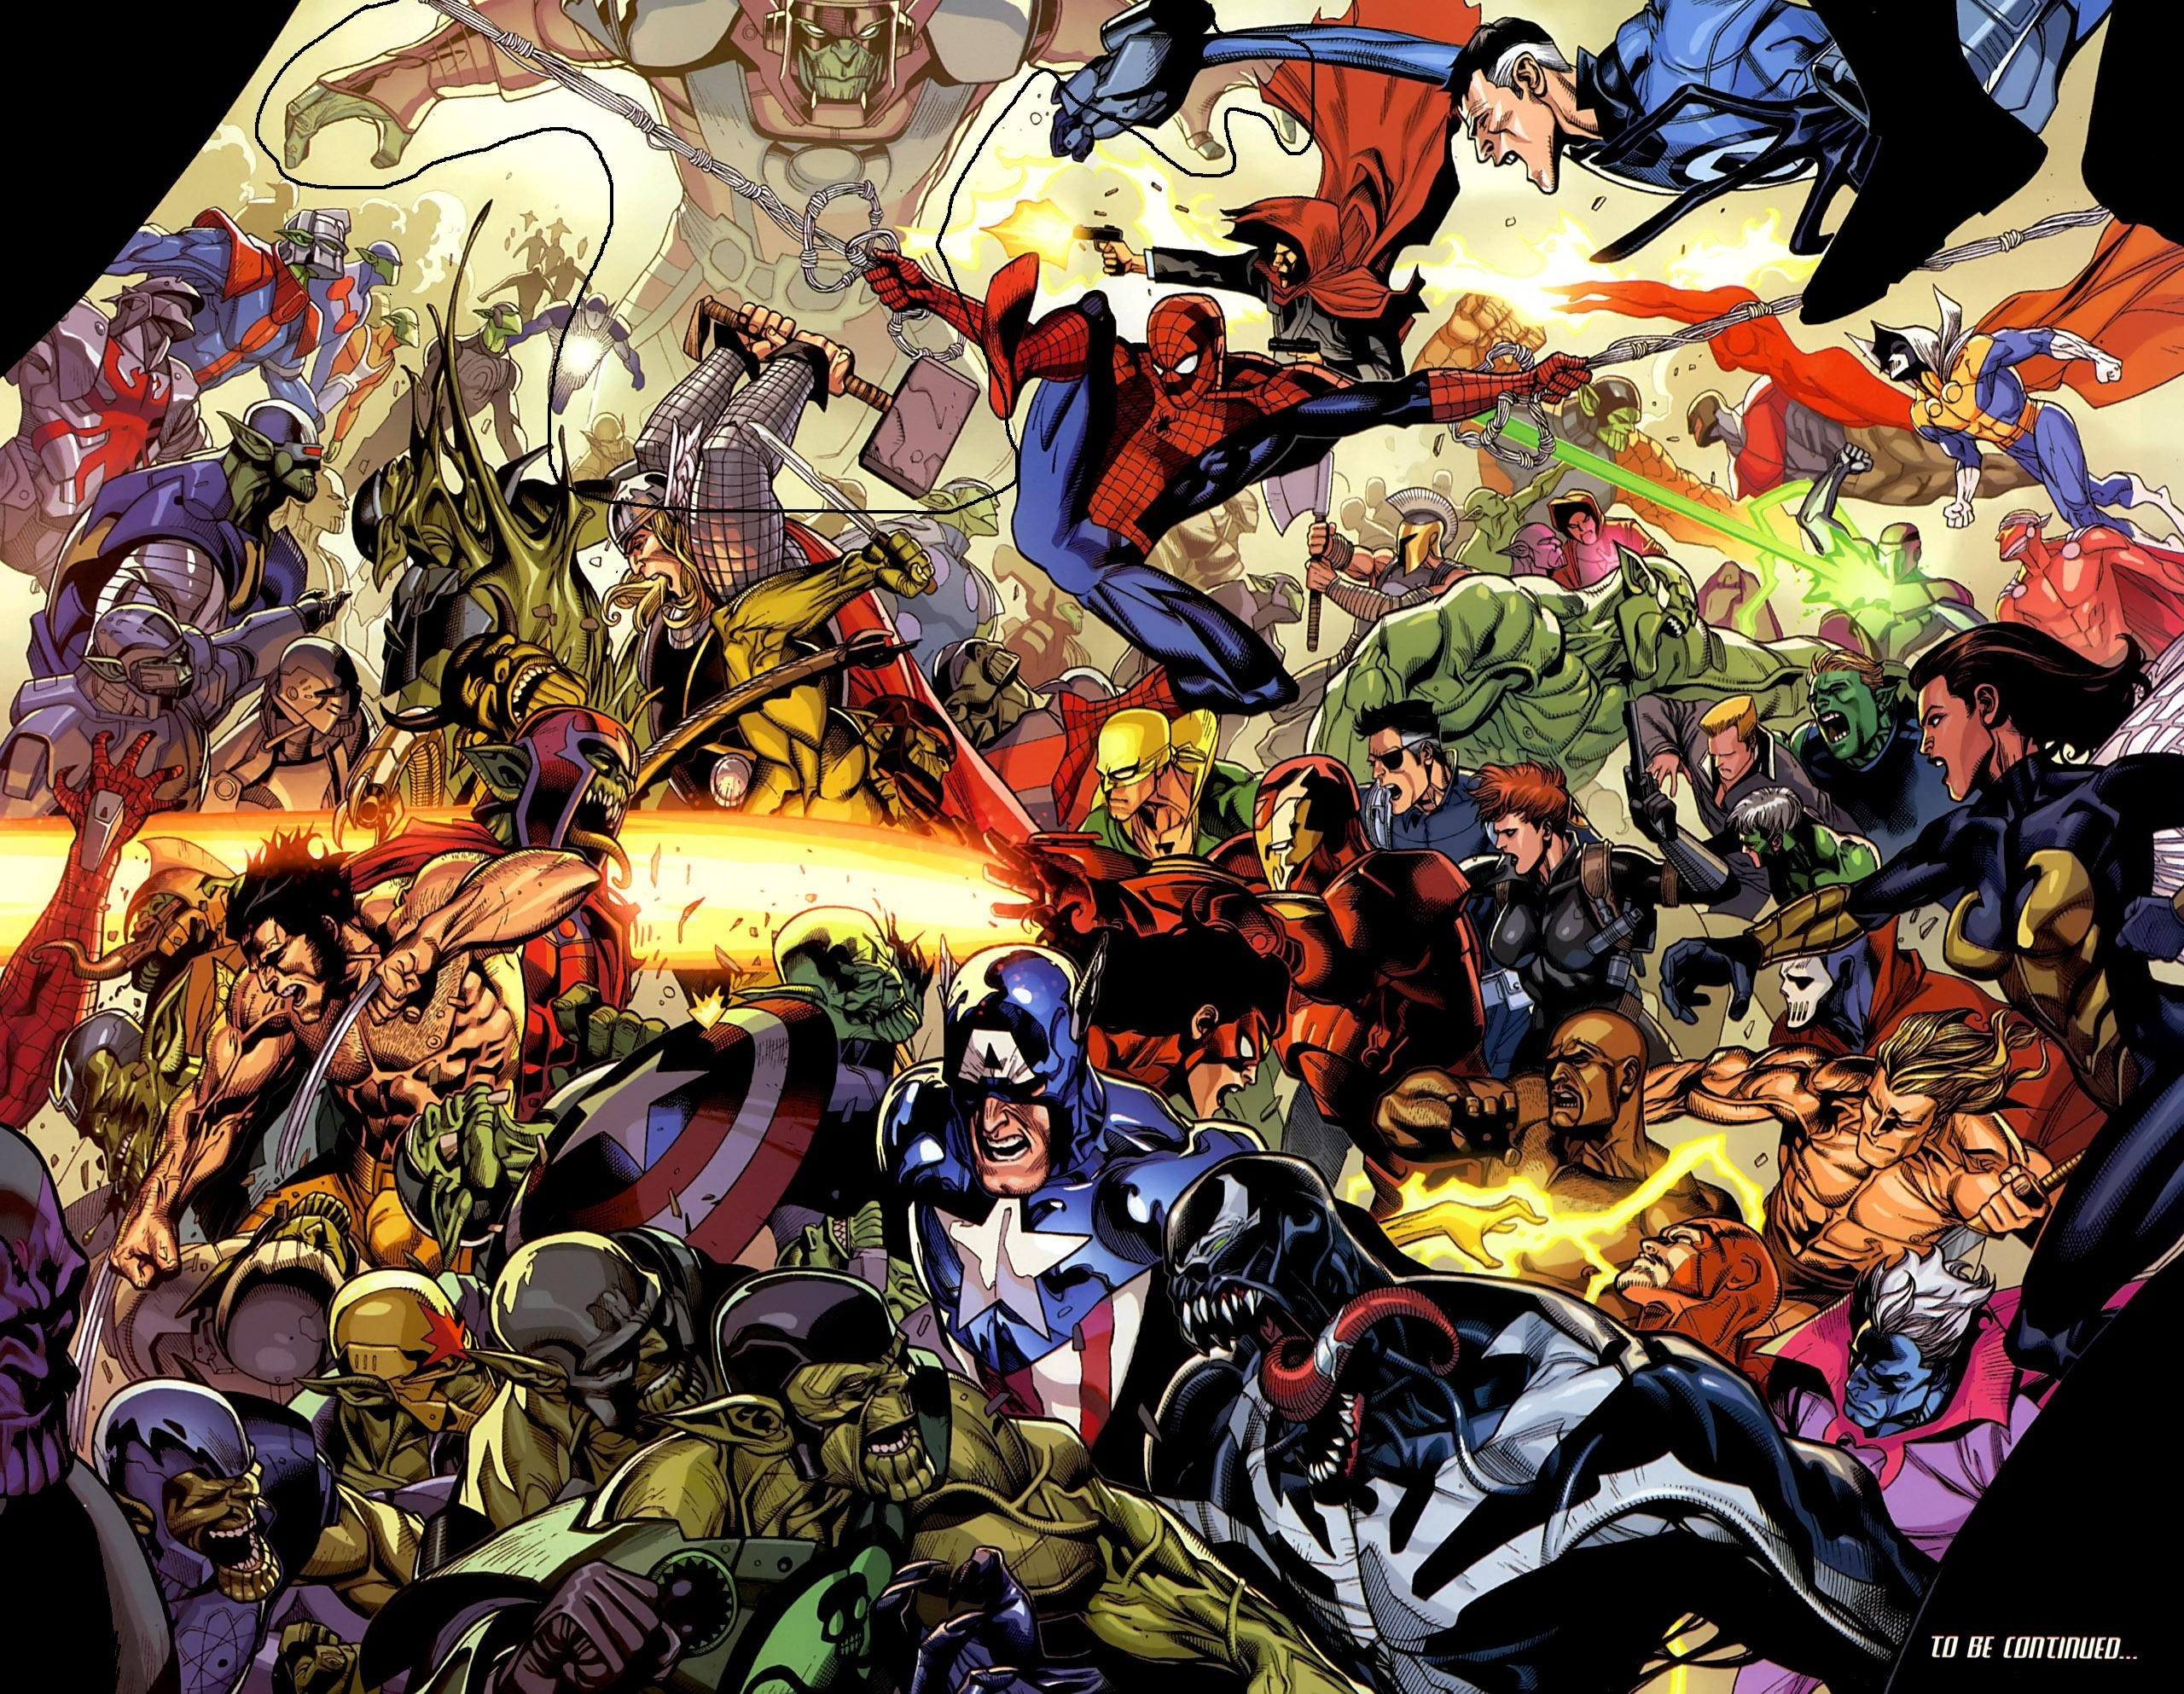 Res: 2560x1986, Comics - Marvel Comics Spider-Man Captain America Wolverine Iron Man Venom  Mister Fantastic Skrull